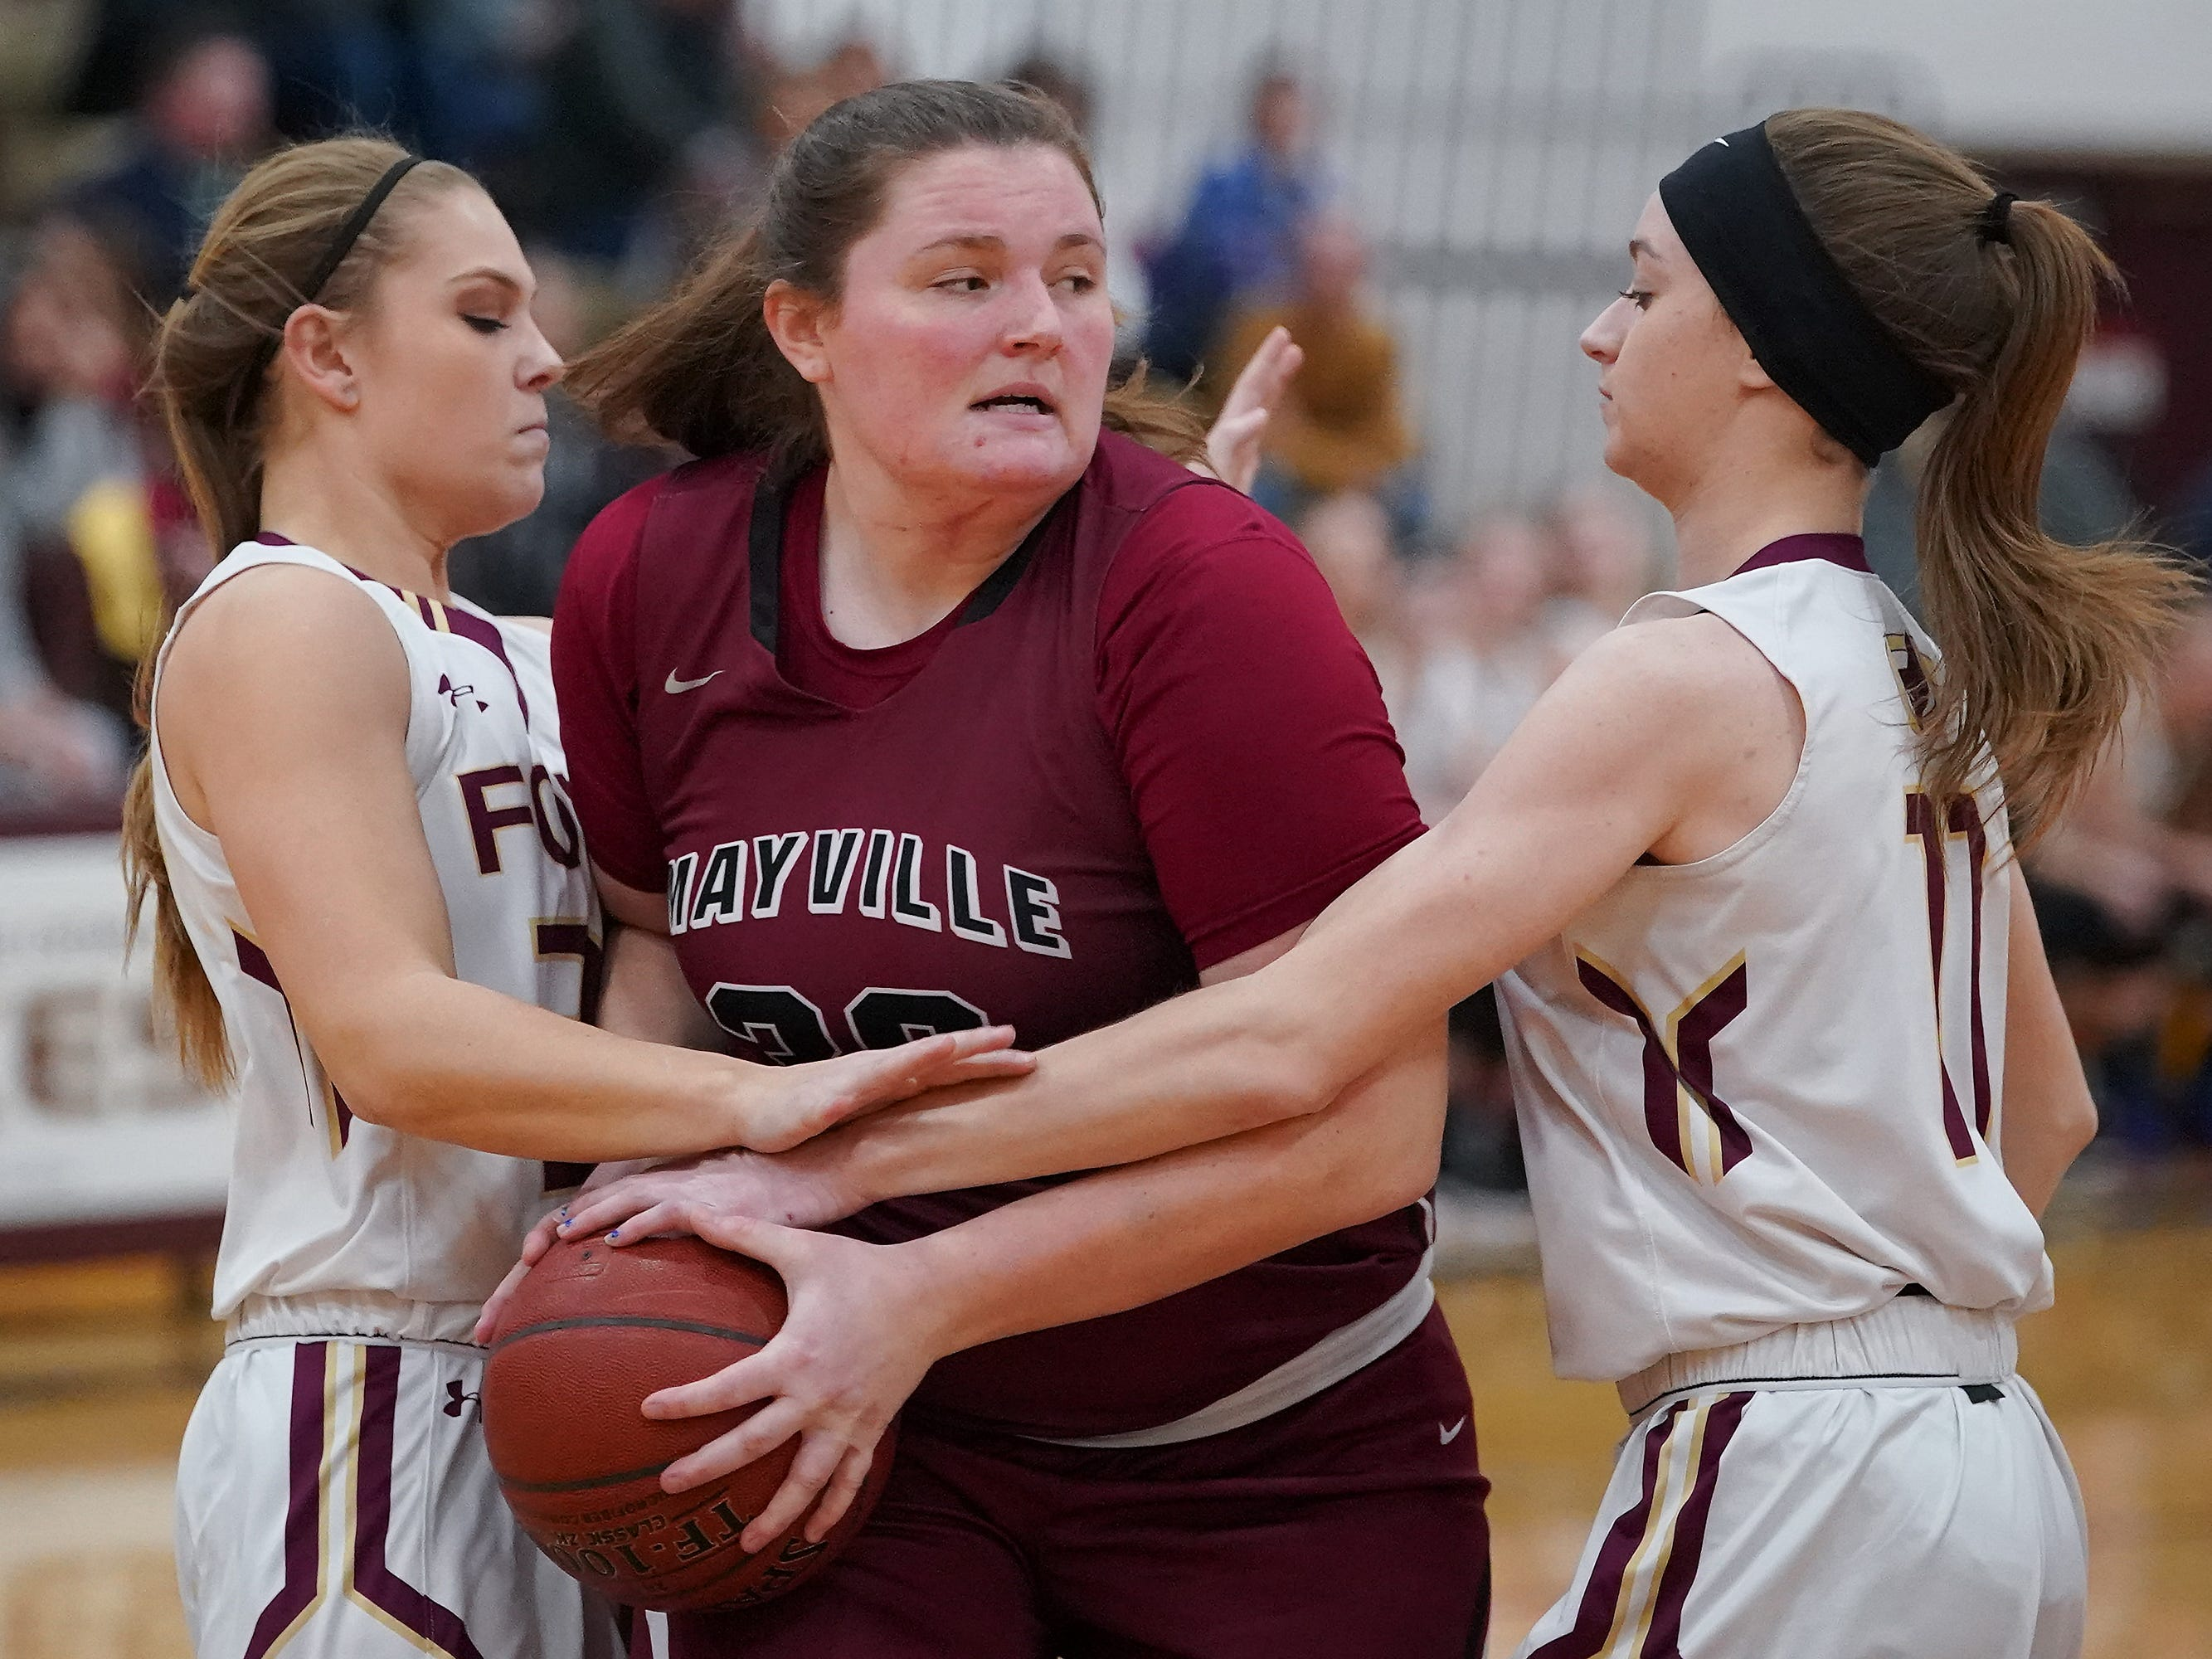 Sydney Schultz (30) of Mayville tries to battle her way past Danycka Milis (11) and Jadeyn Yonke (22) of Omro. The Omro Foxes hosted the Mayville Cardinals in a Flyway Conference basketball game Friday evening, January 4, 2019.